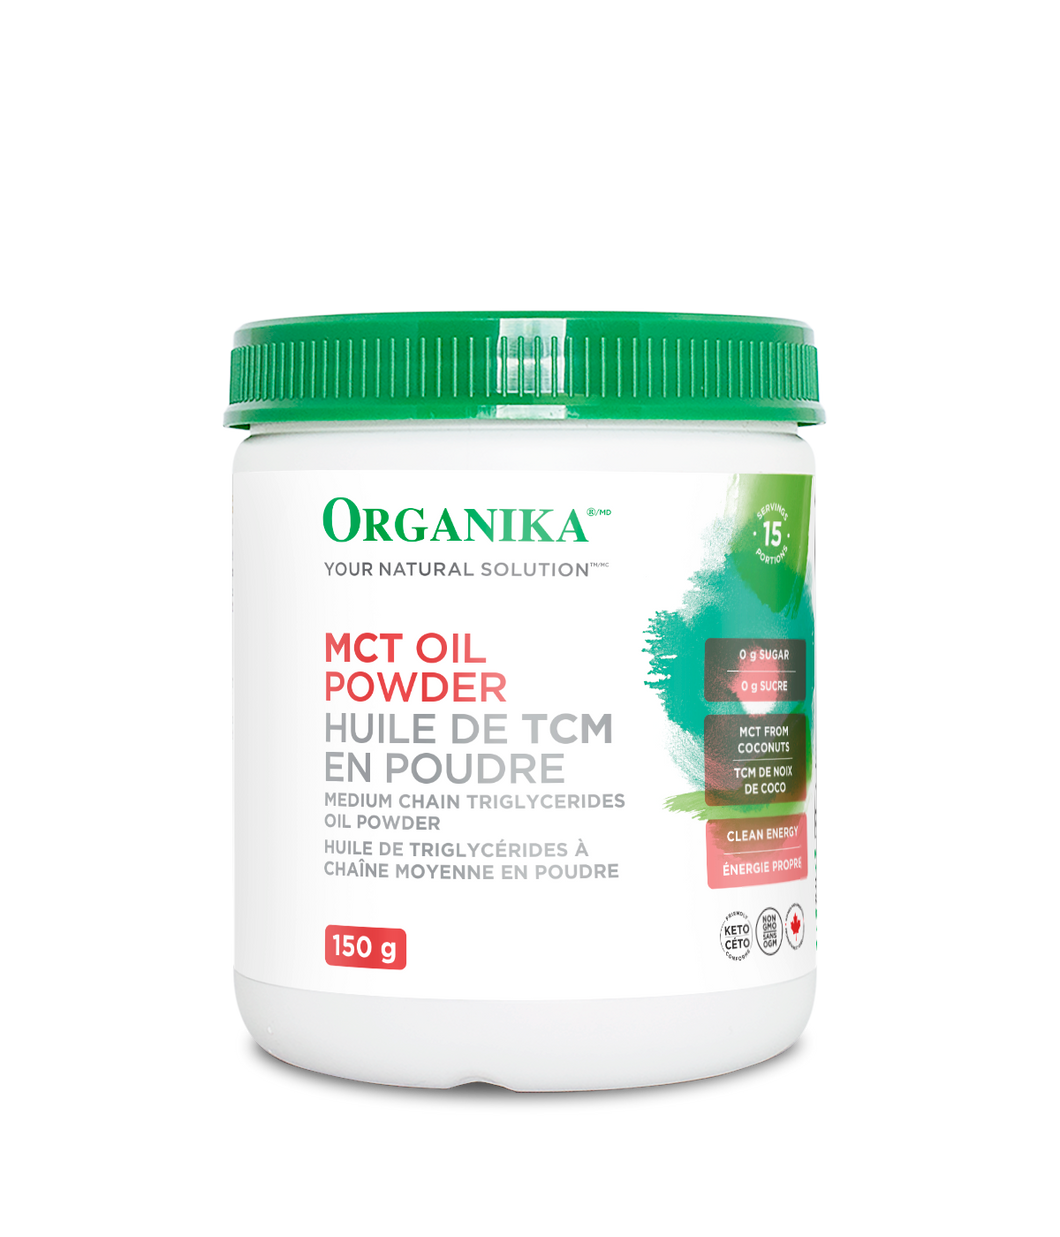 Organika MCT Oil Powder Supplement